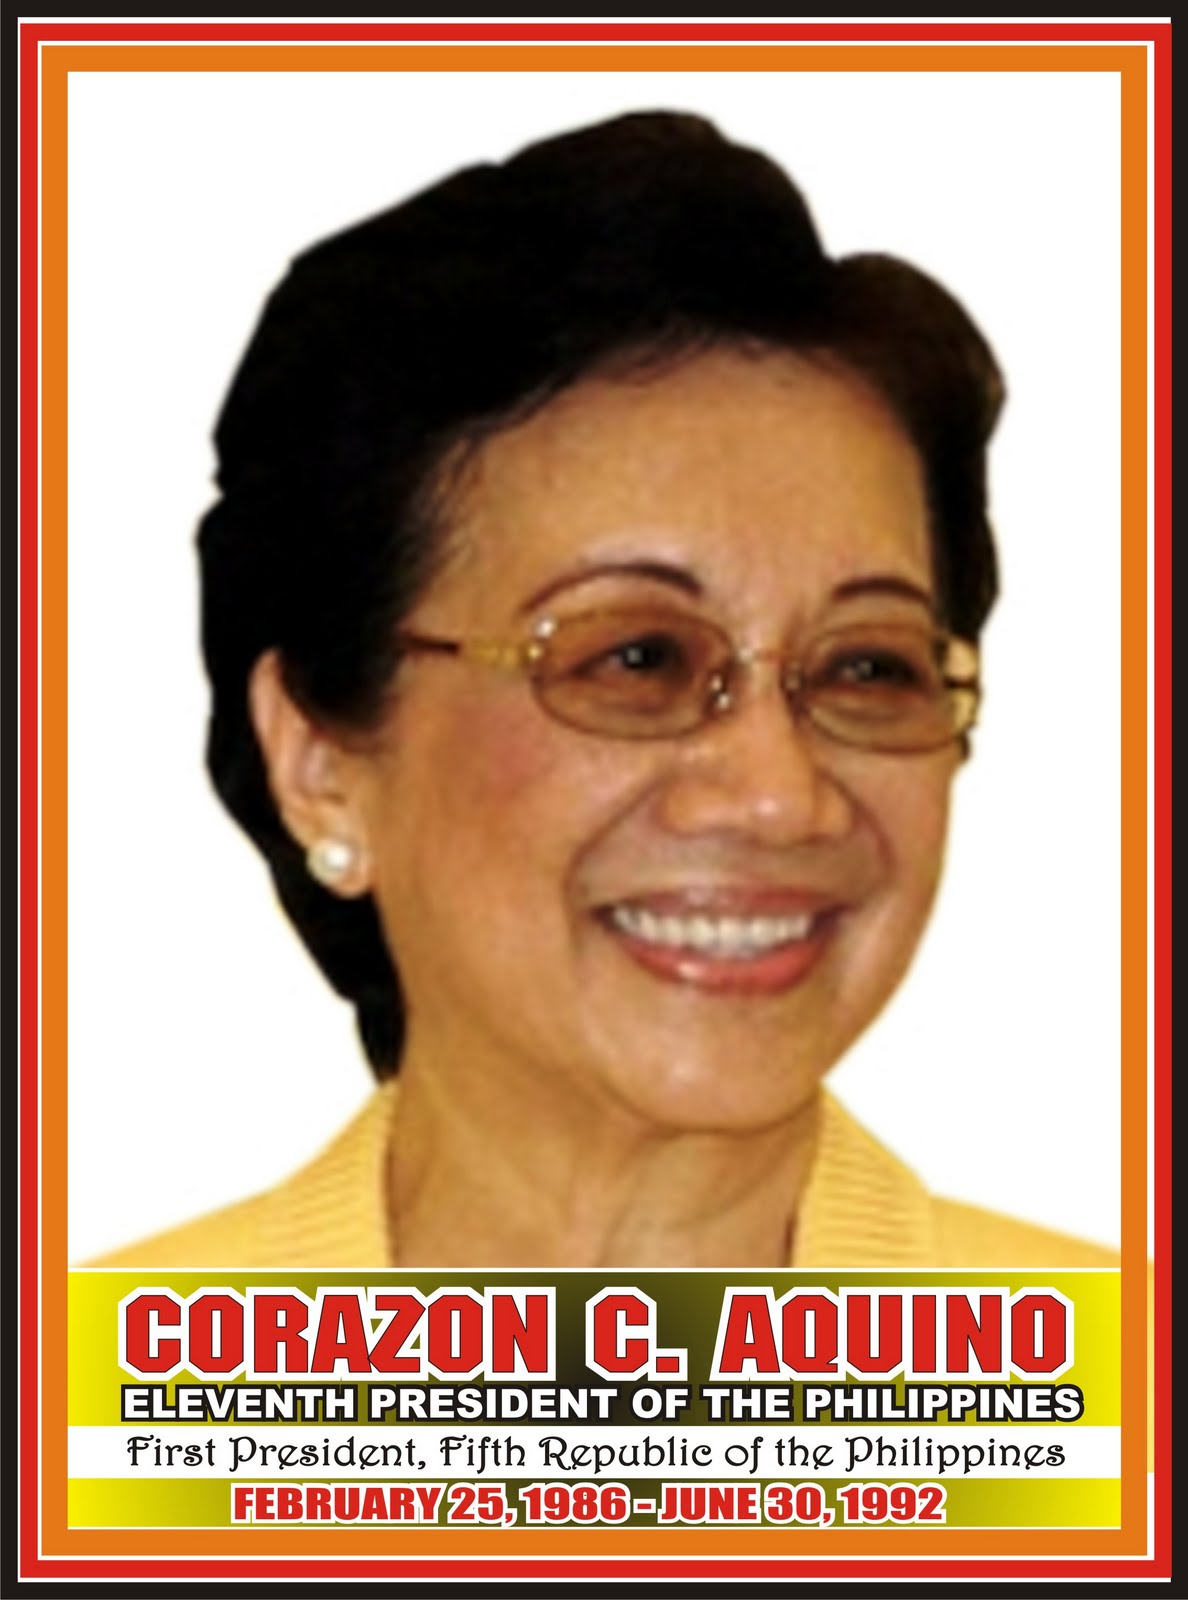 a biography of corazon aquino cory the first woman president of the philippines Learn about corazon aquino: her birthday,  the first female president of the philippines from 1986 to 1992 who came to power when she helped lead the people.